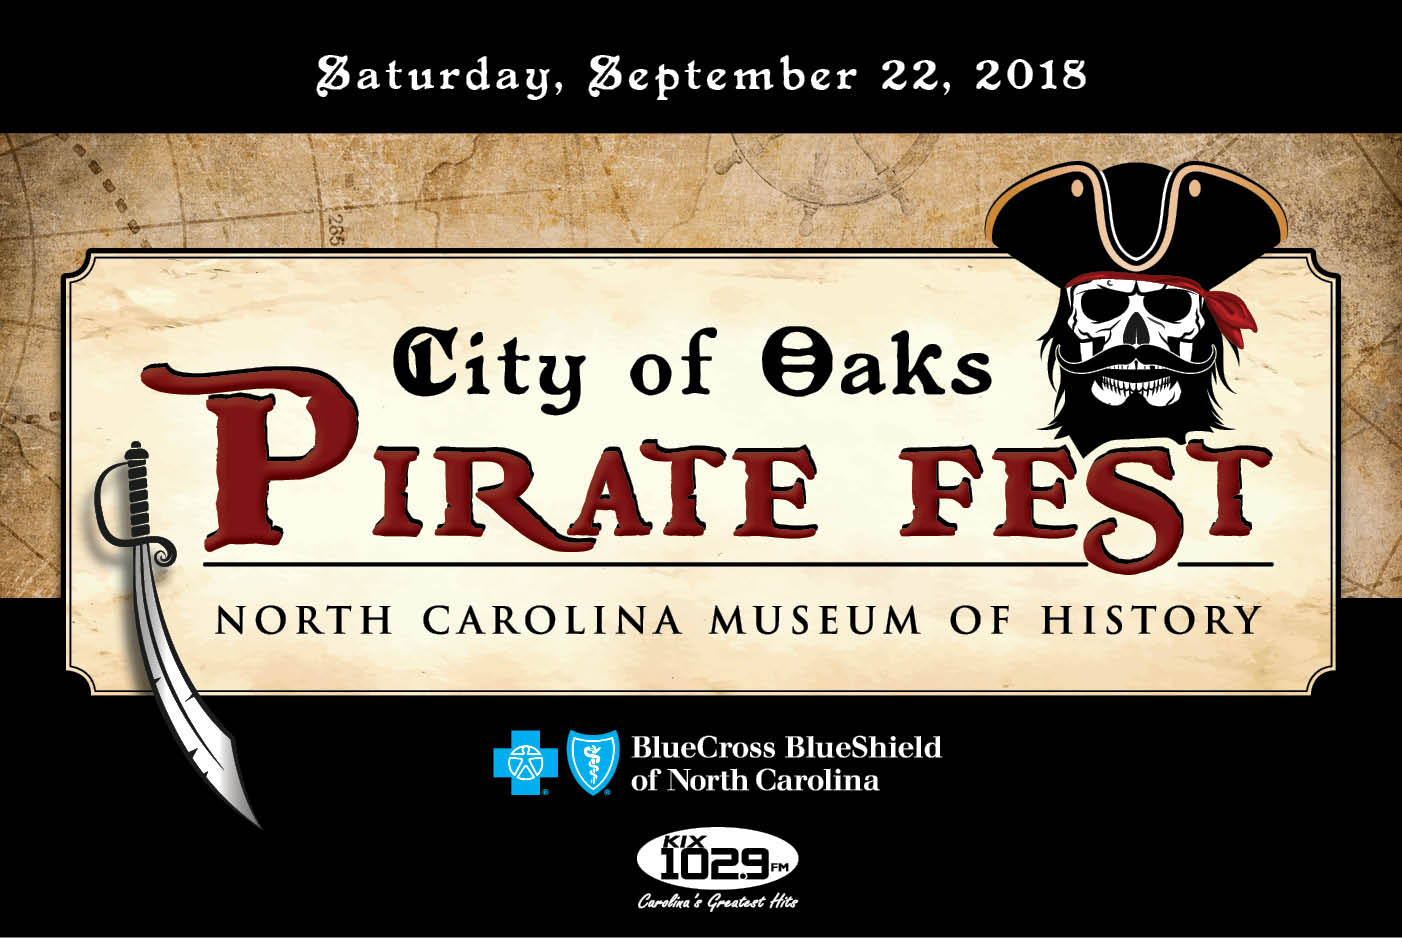 city of oaks pirate fest nc museum of history